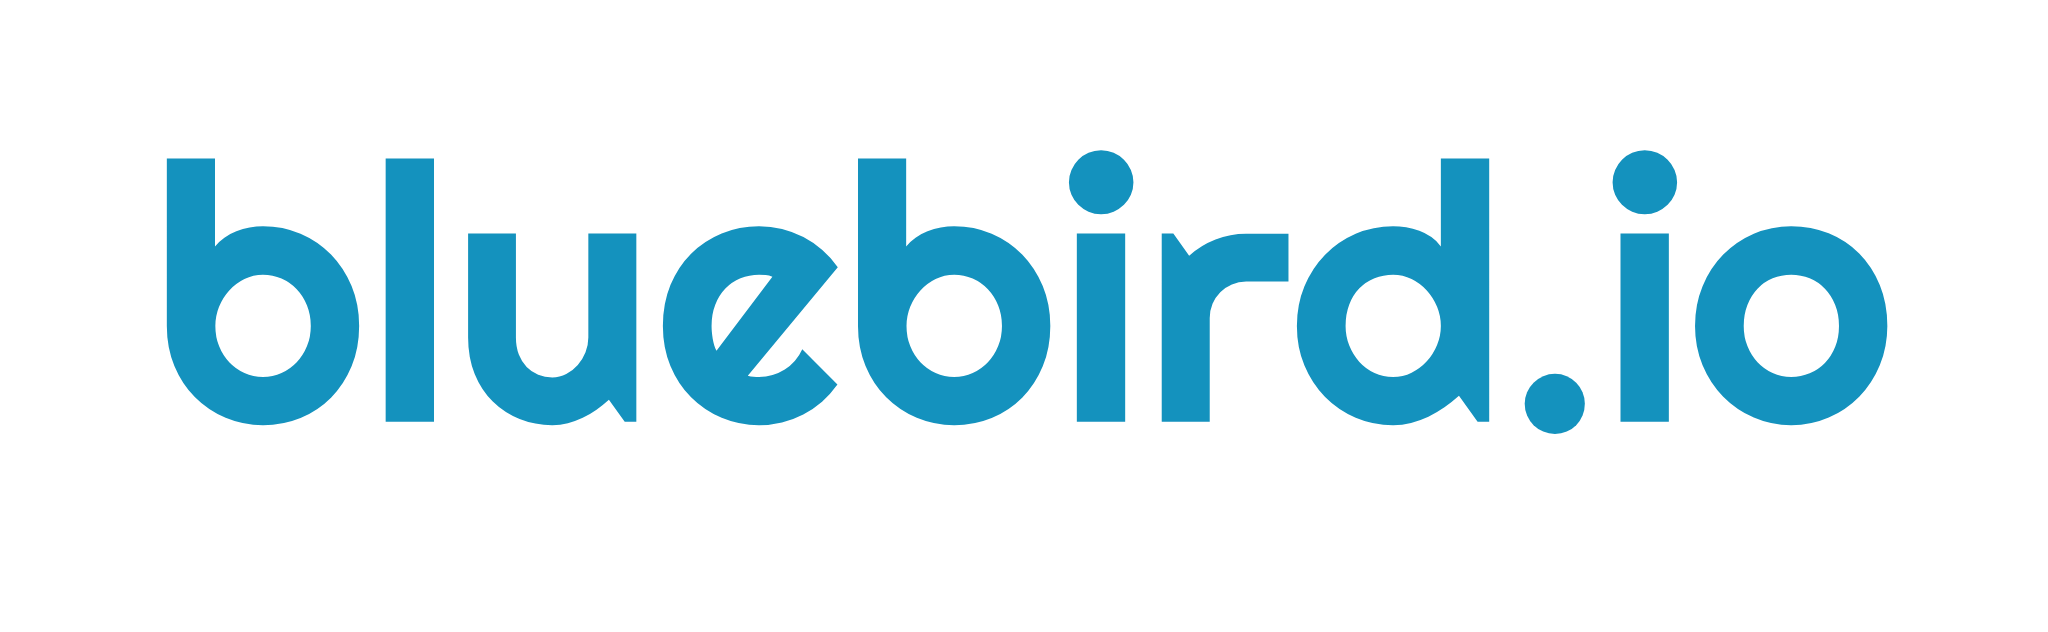 community.bluebird.io